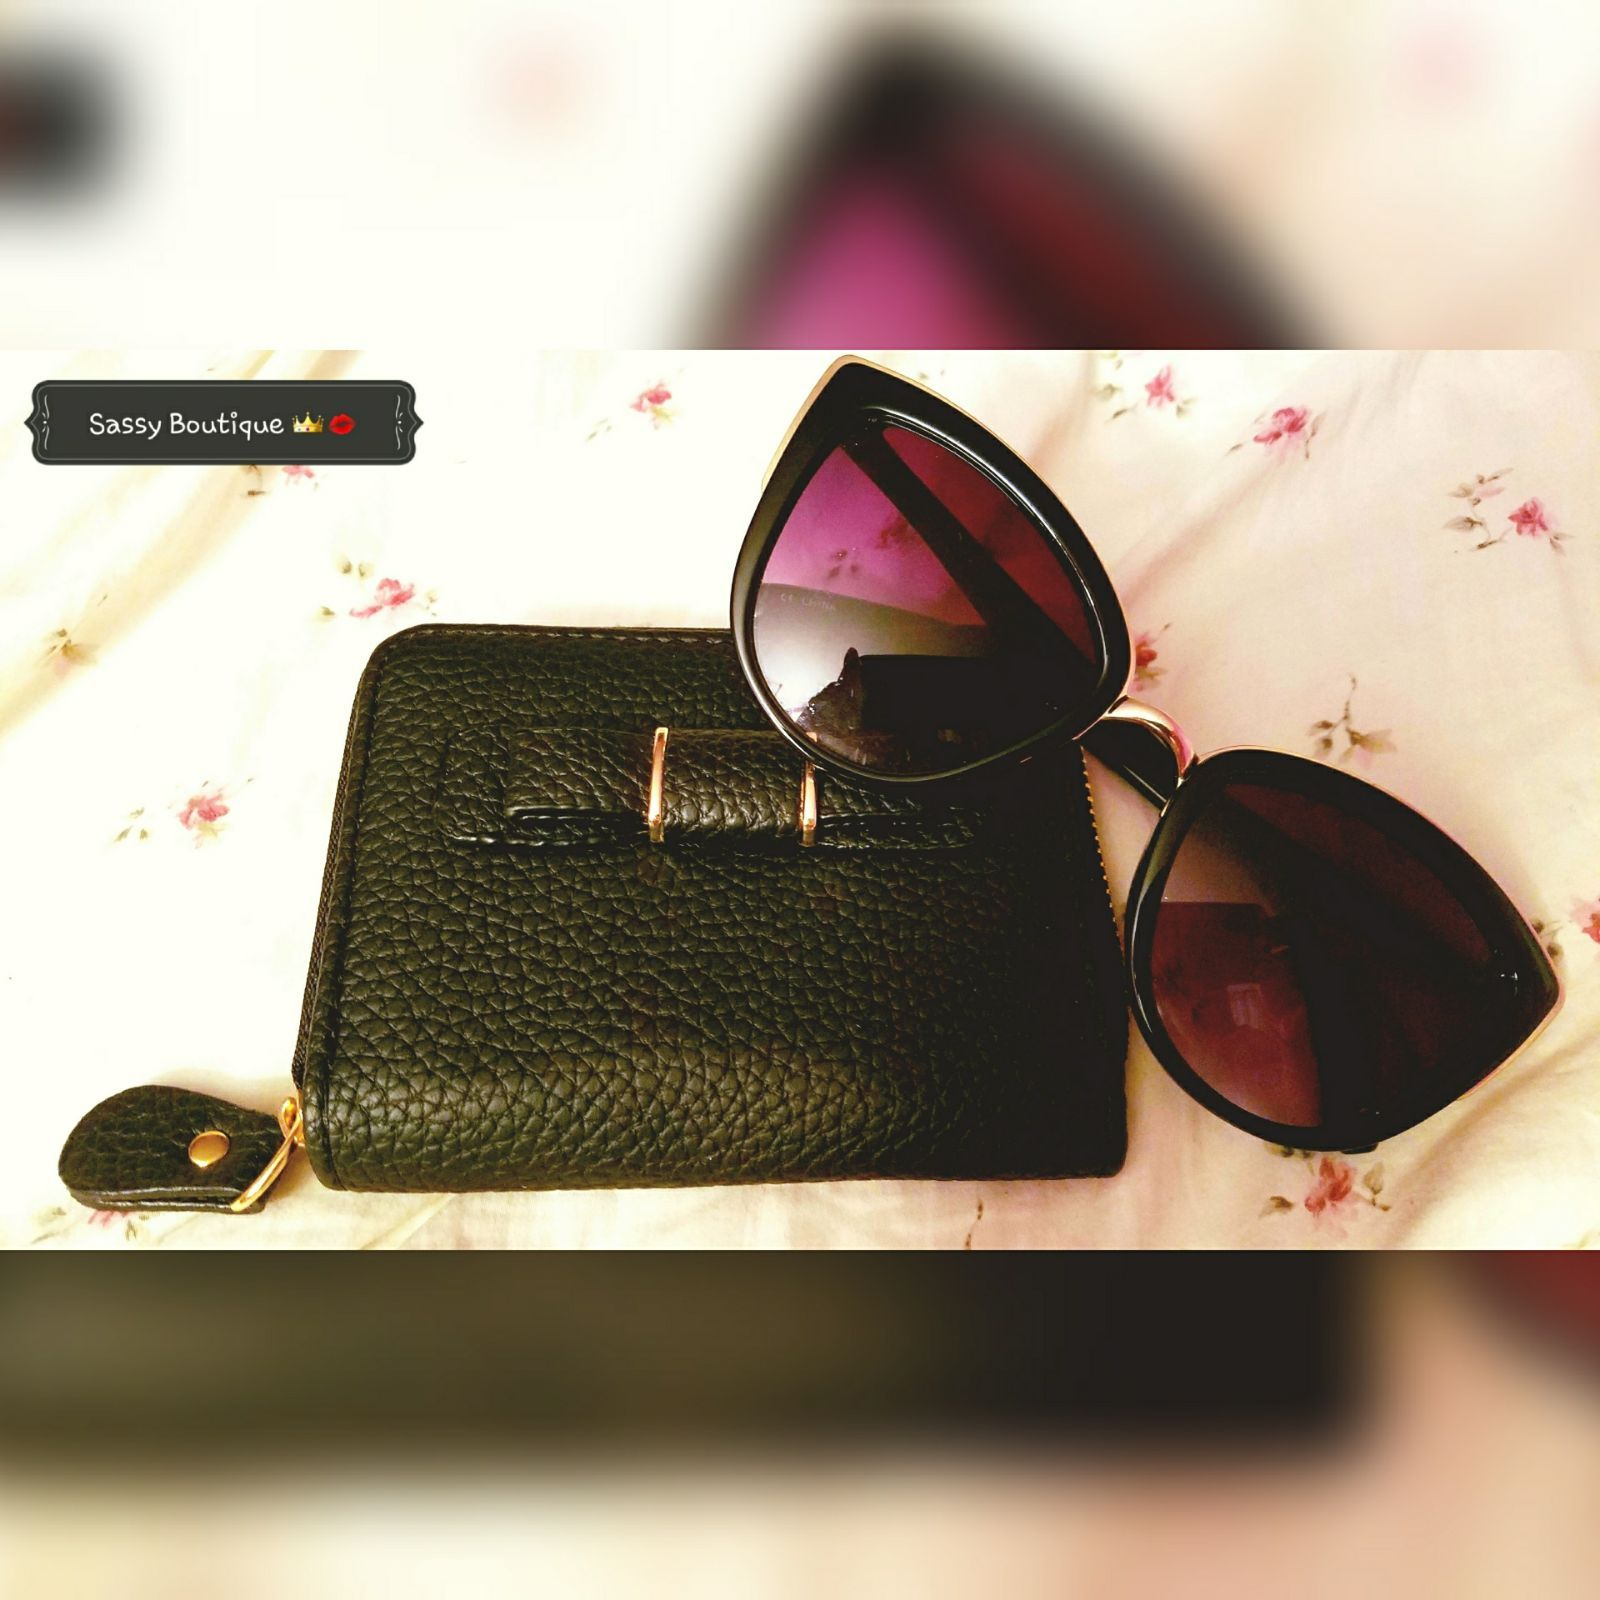 Uncategorized Leather Like Material cute small wallet with a bow on it very strong leather like material